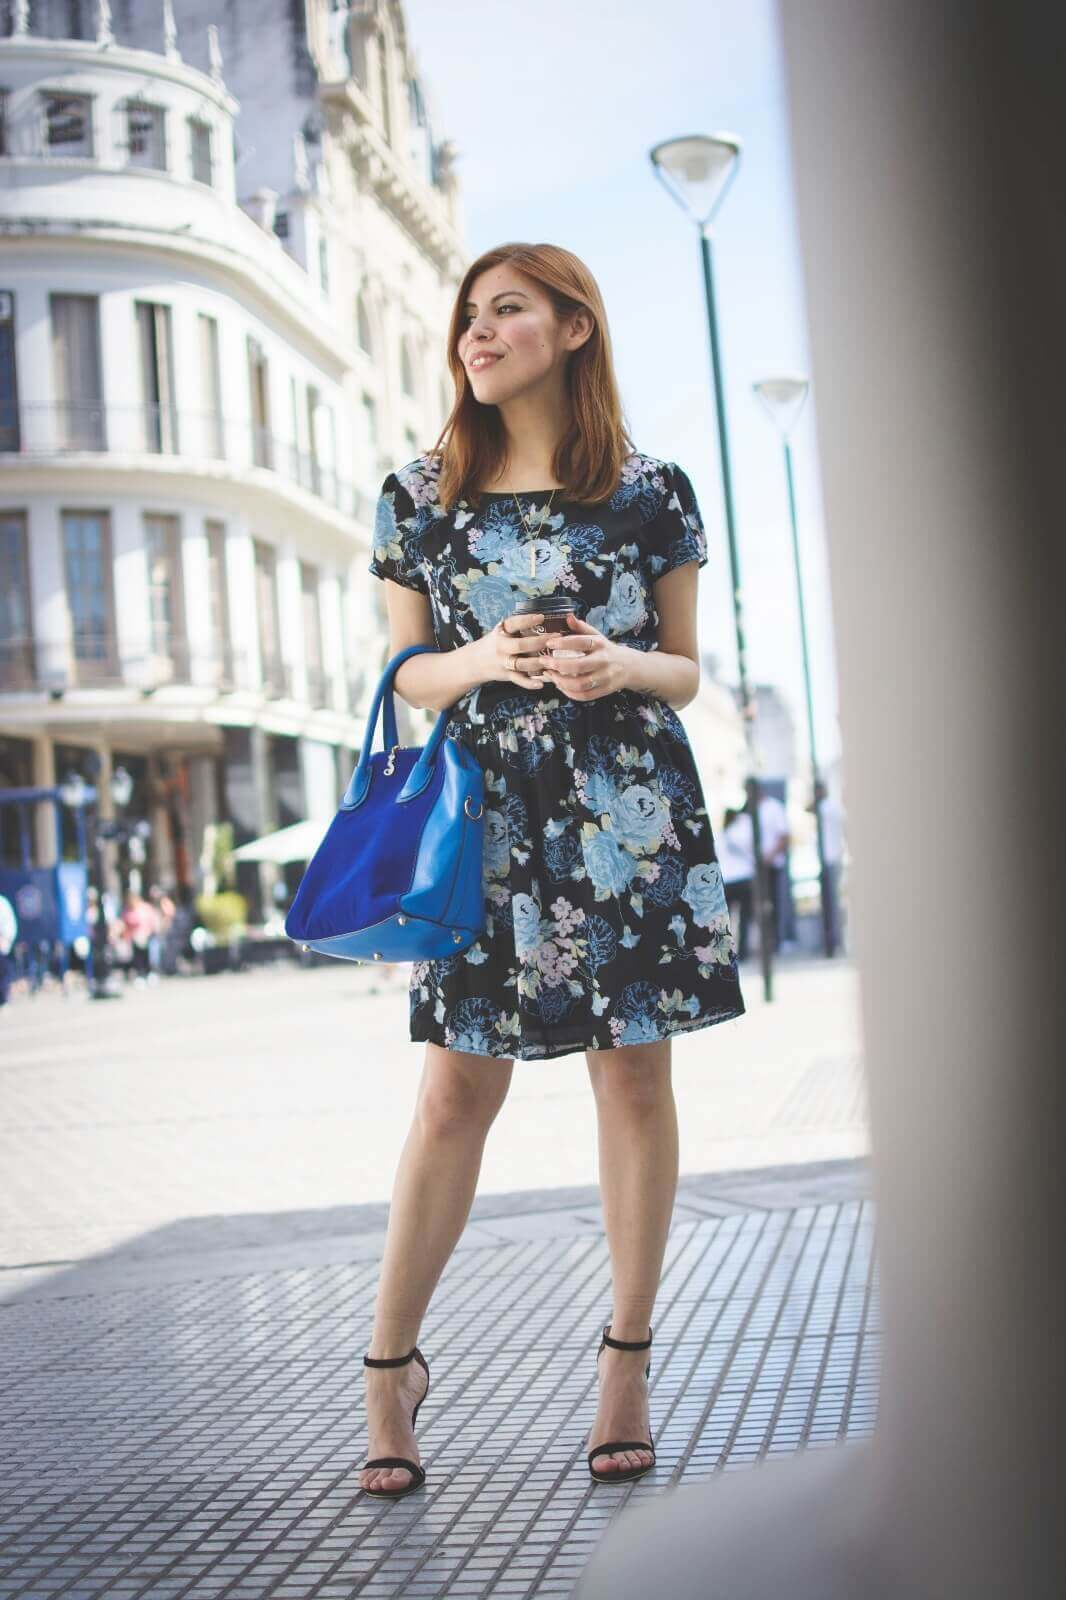 gamiss-black-strappy-sandals-blue-floral-dress-rosegal-cobalt-blue-tote-bag-deborah-ferrero-style-by-deb02